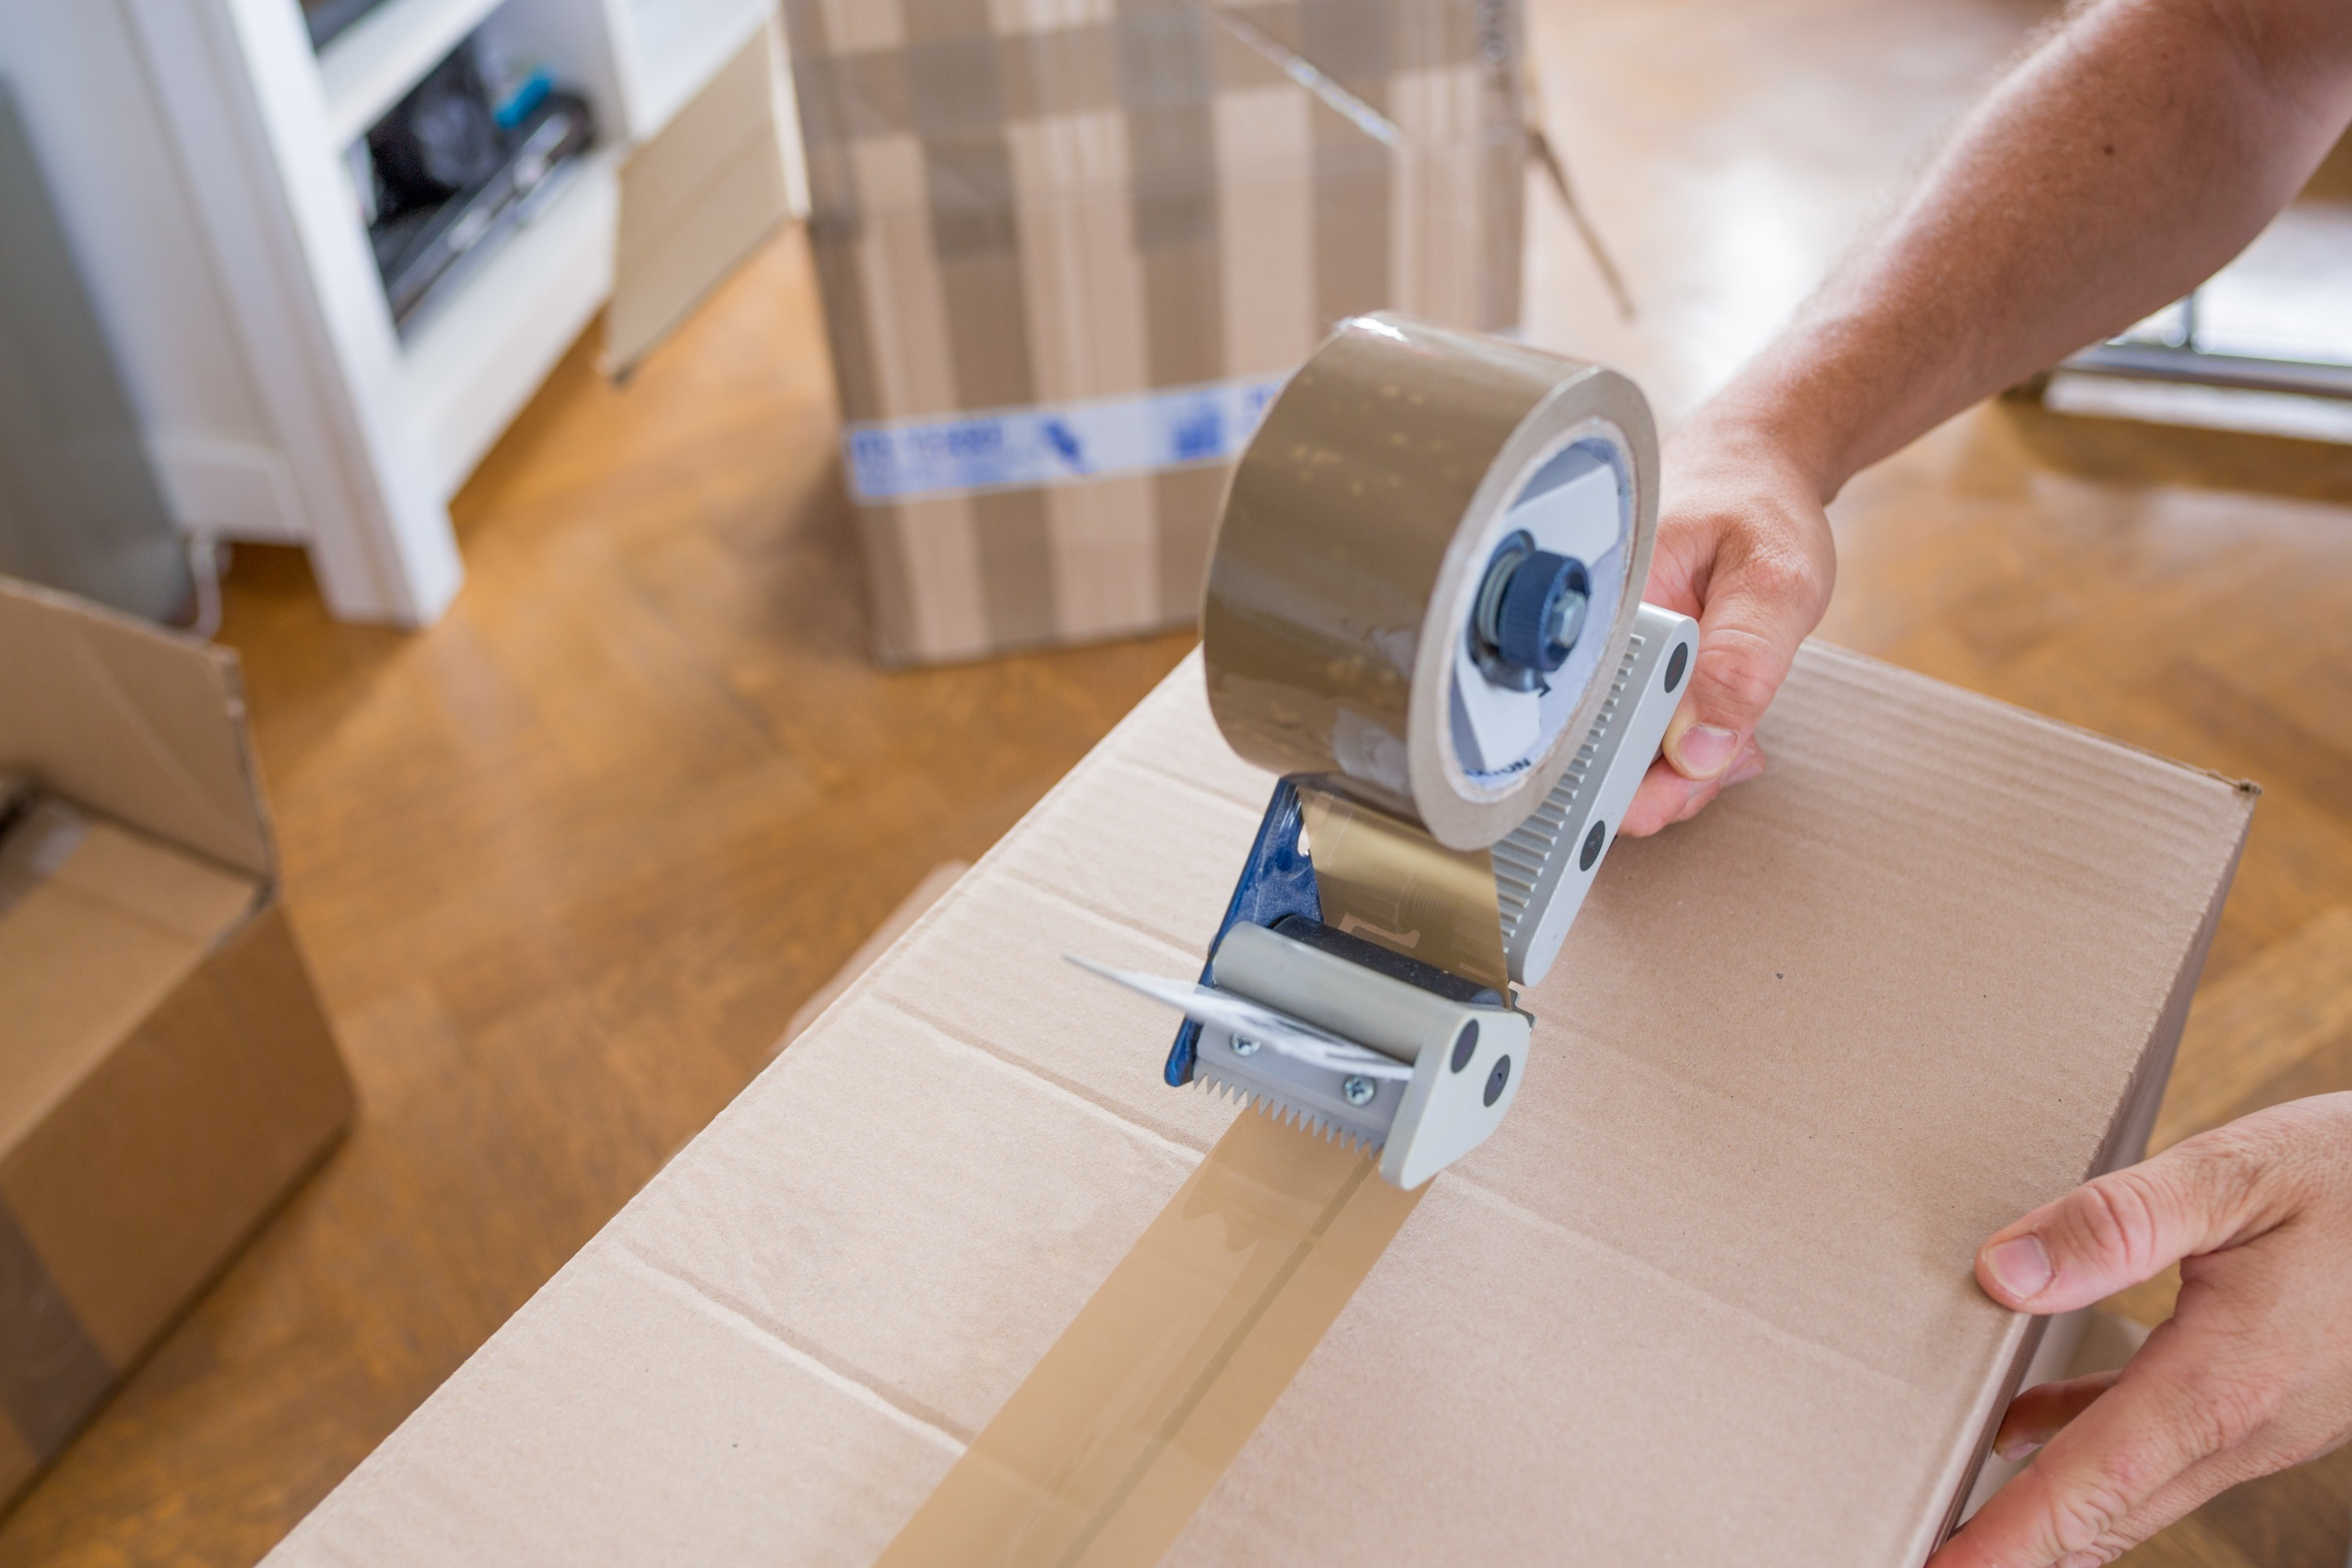 A person uses packing tape on a brown cardboard moving house inside a home with hardwood floors.